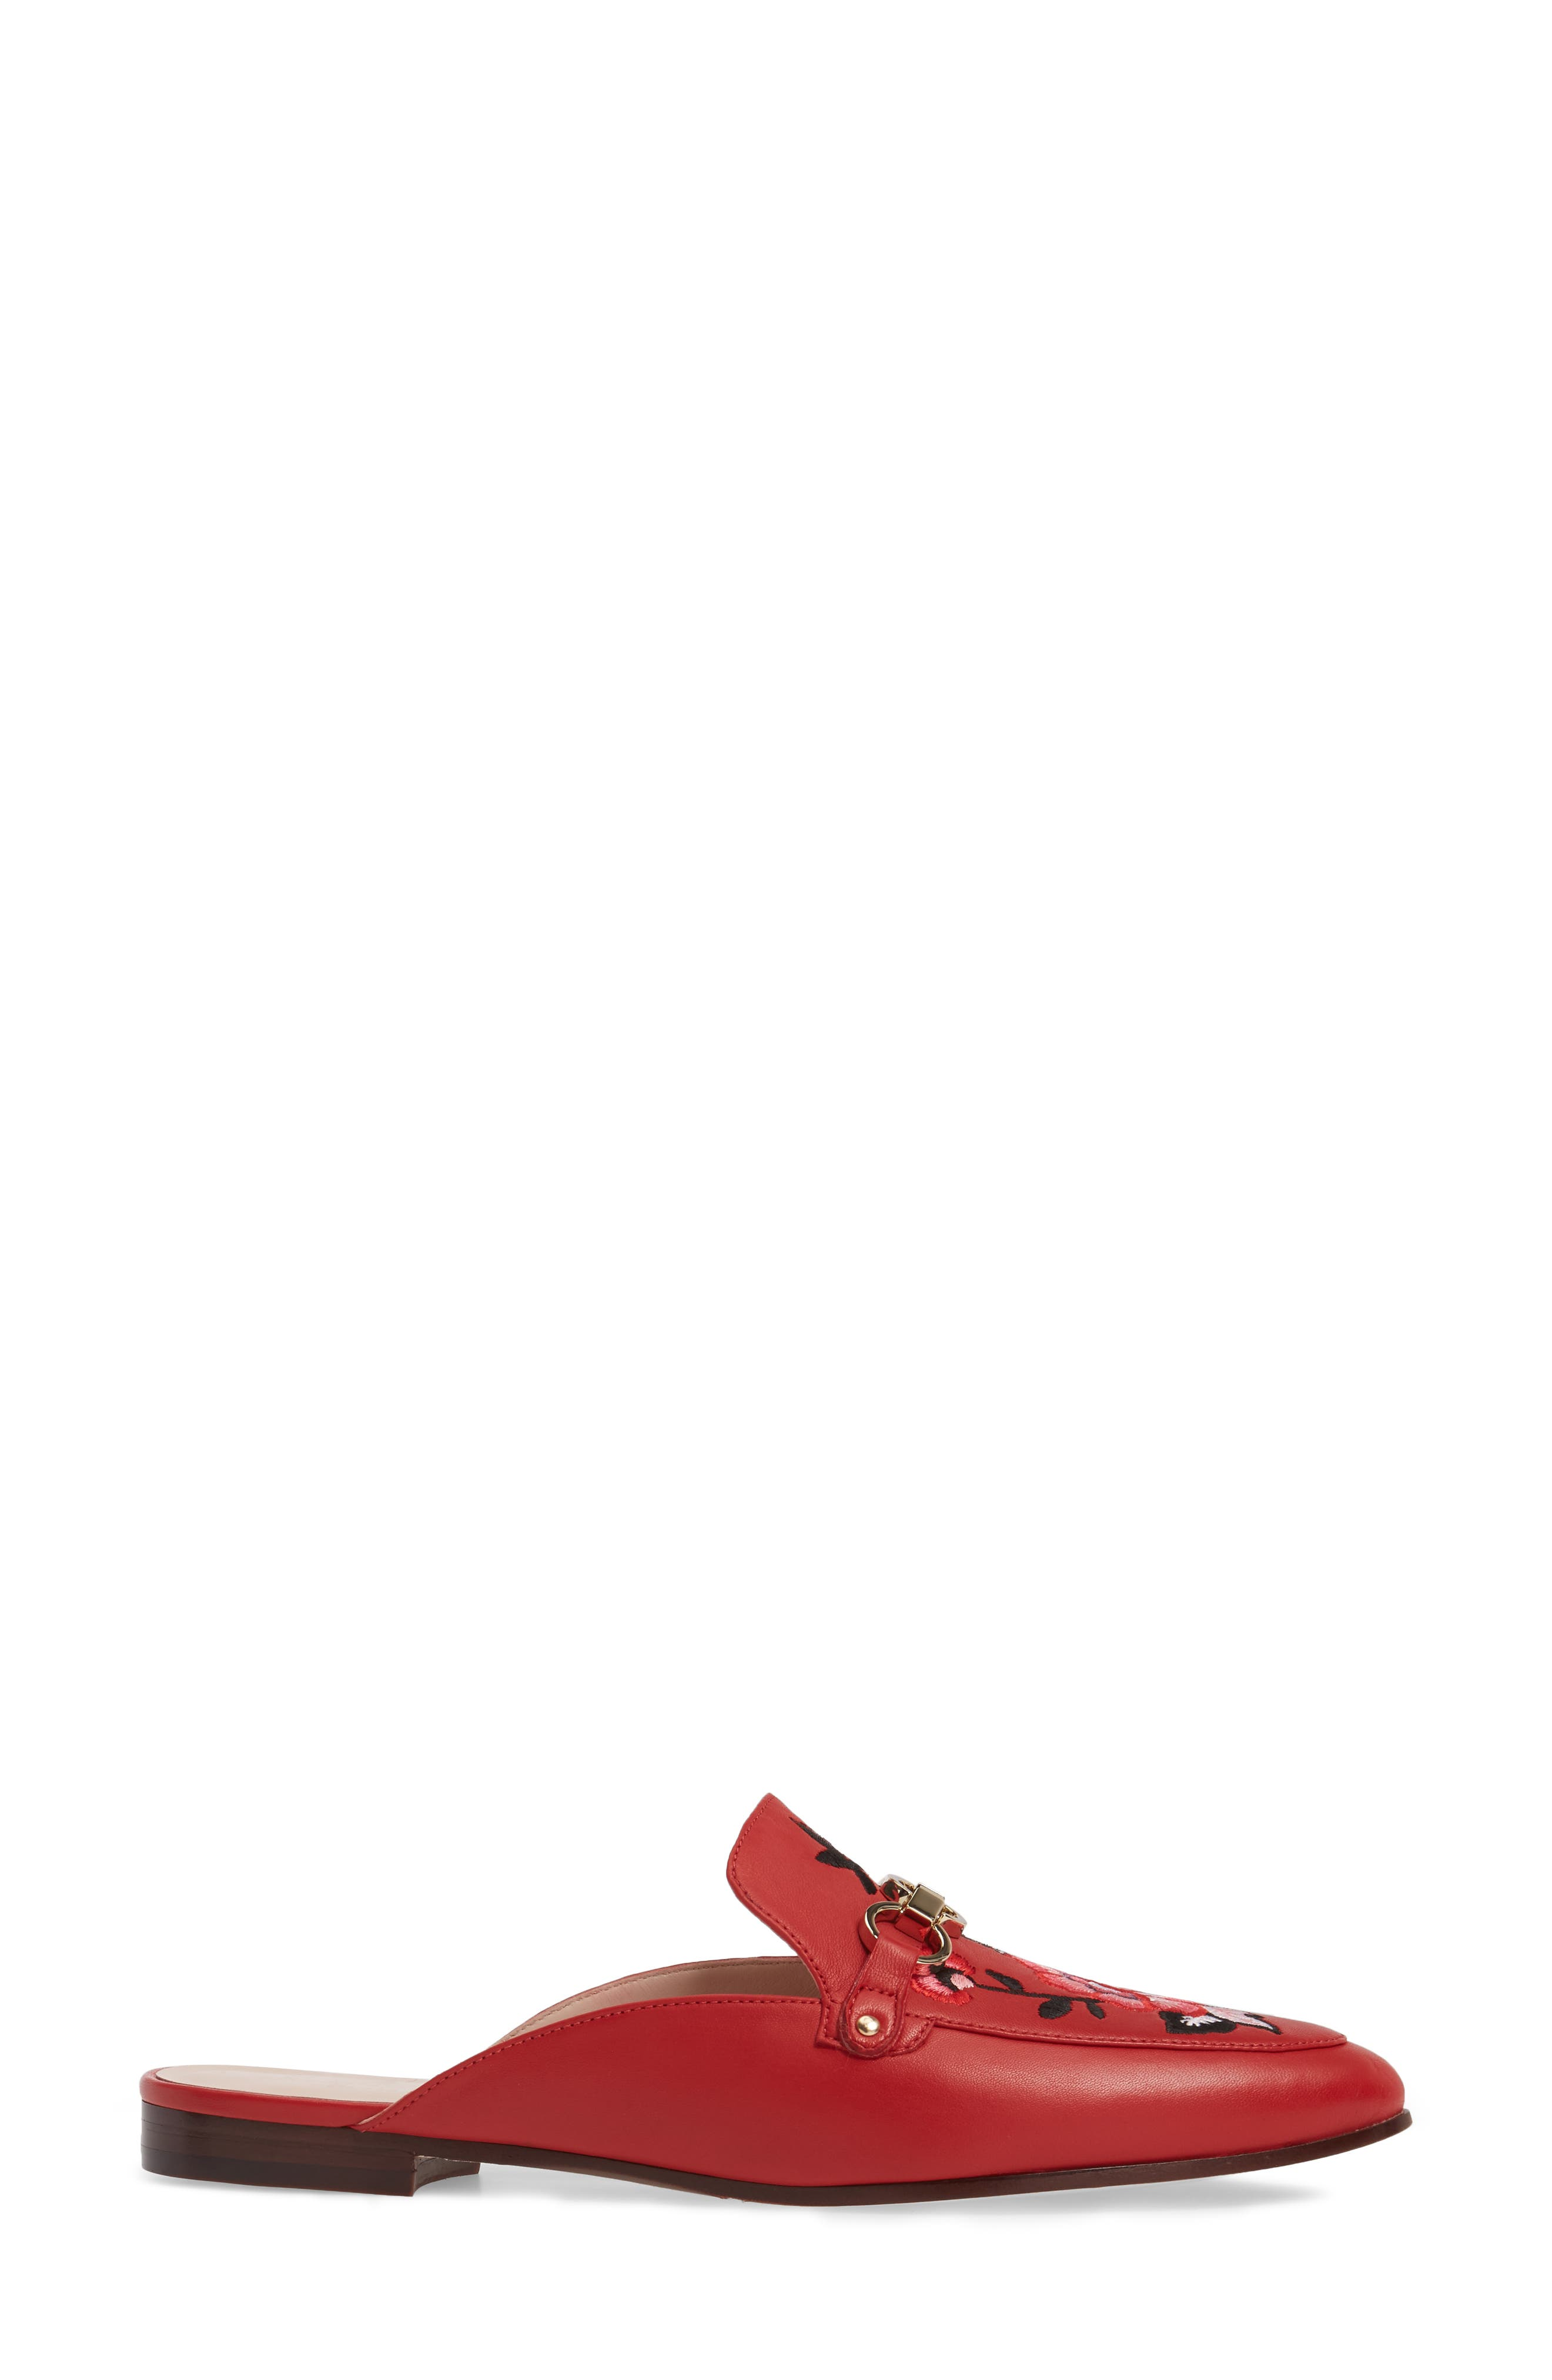 canyon embroidered loafer mule,                             Alternate thumbnail 3, color,                             Maraschino Red Nappa